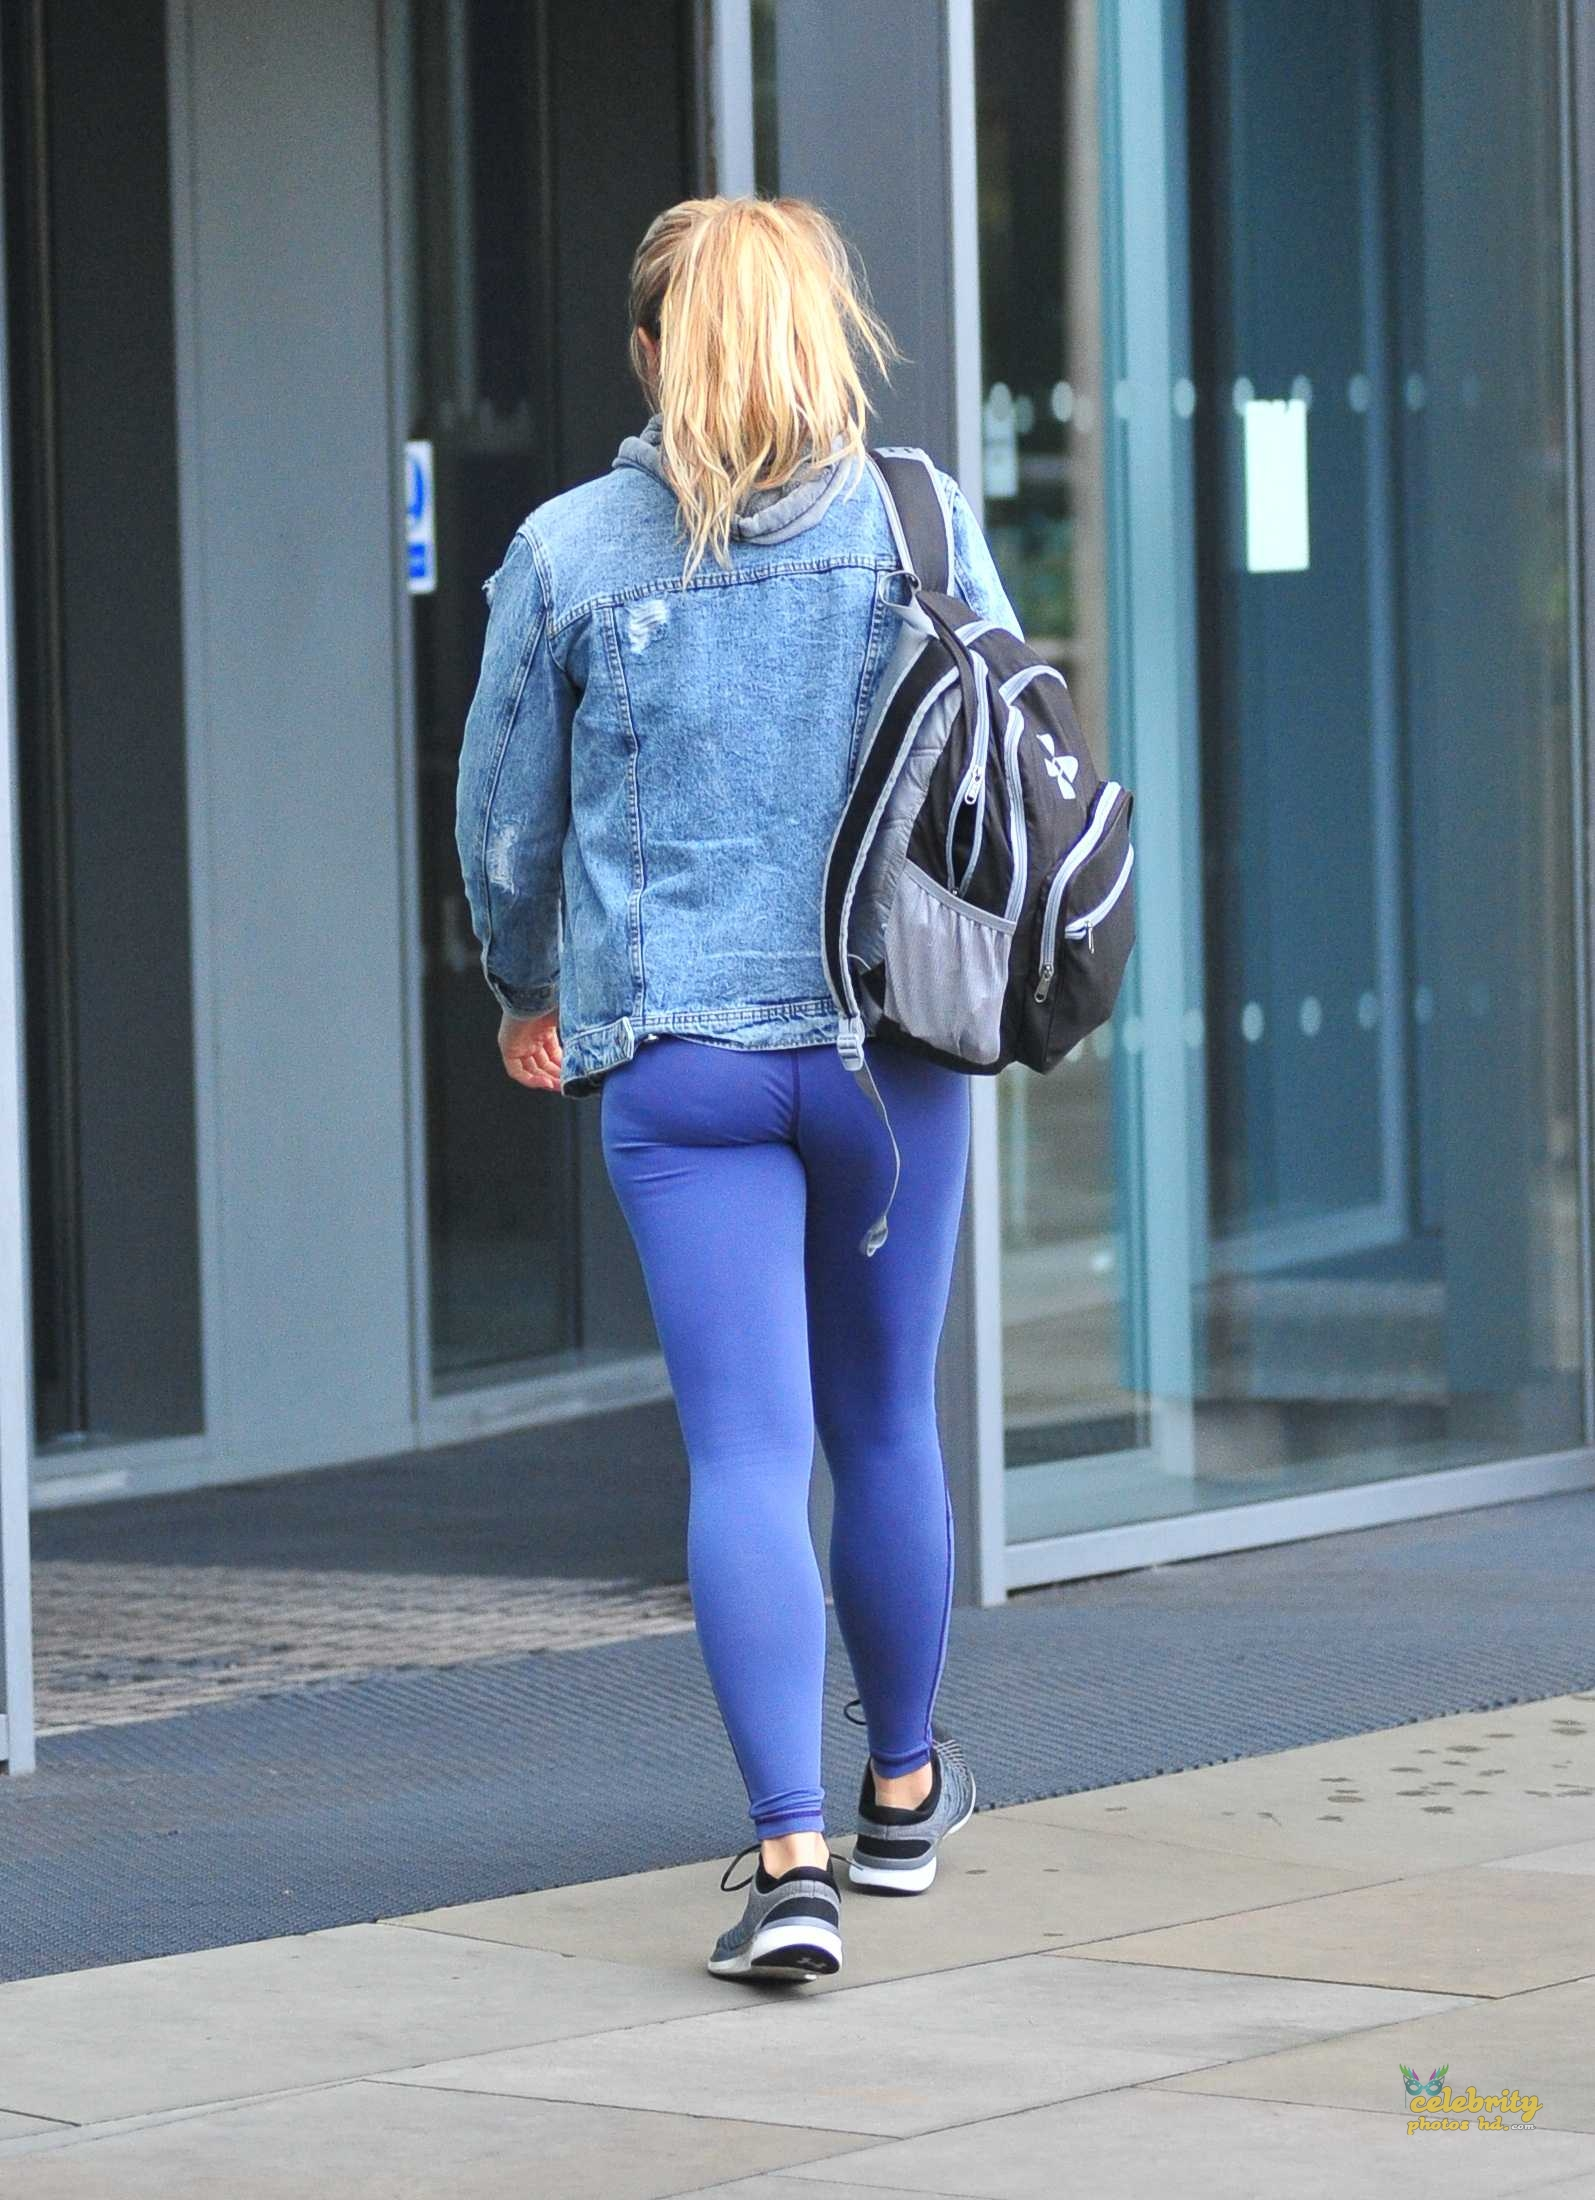 Gemma Atkinson Booty, Ariving at 'Strictly Come Dancing' Rehearsals (5)